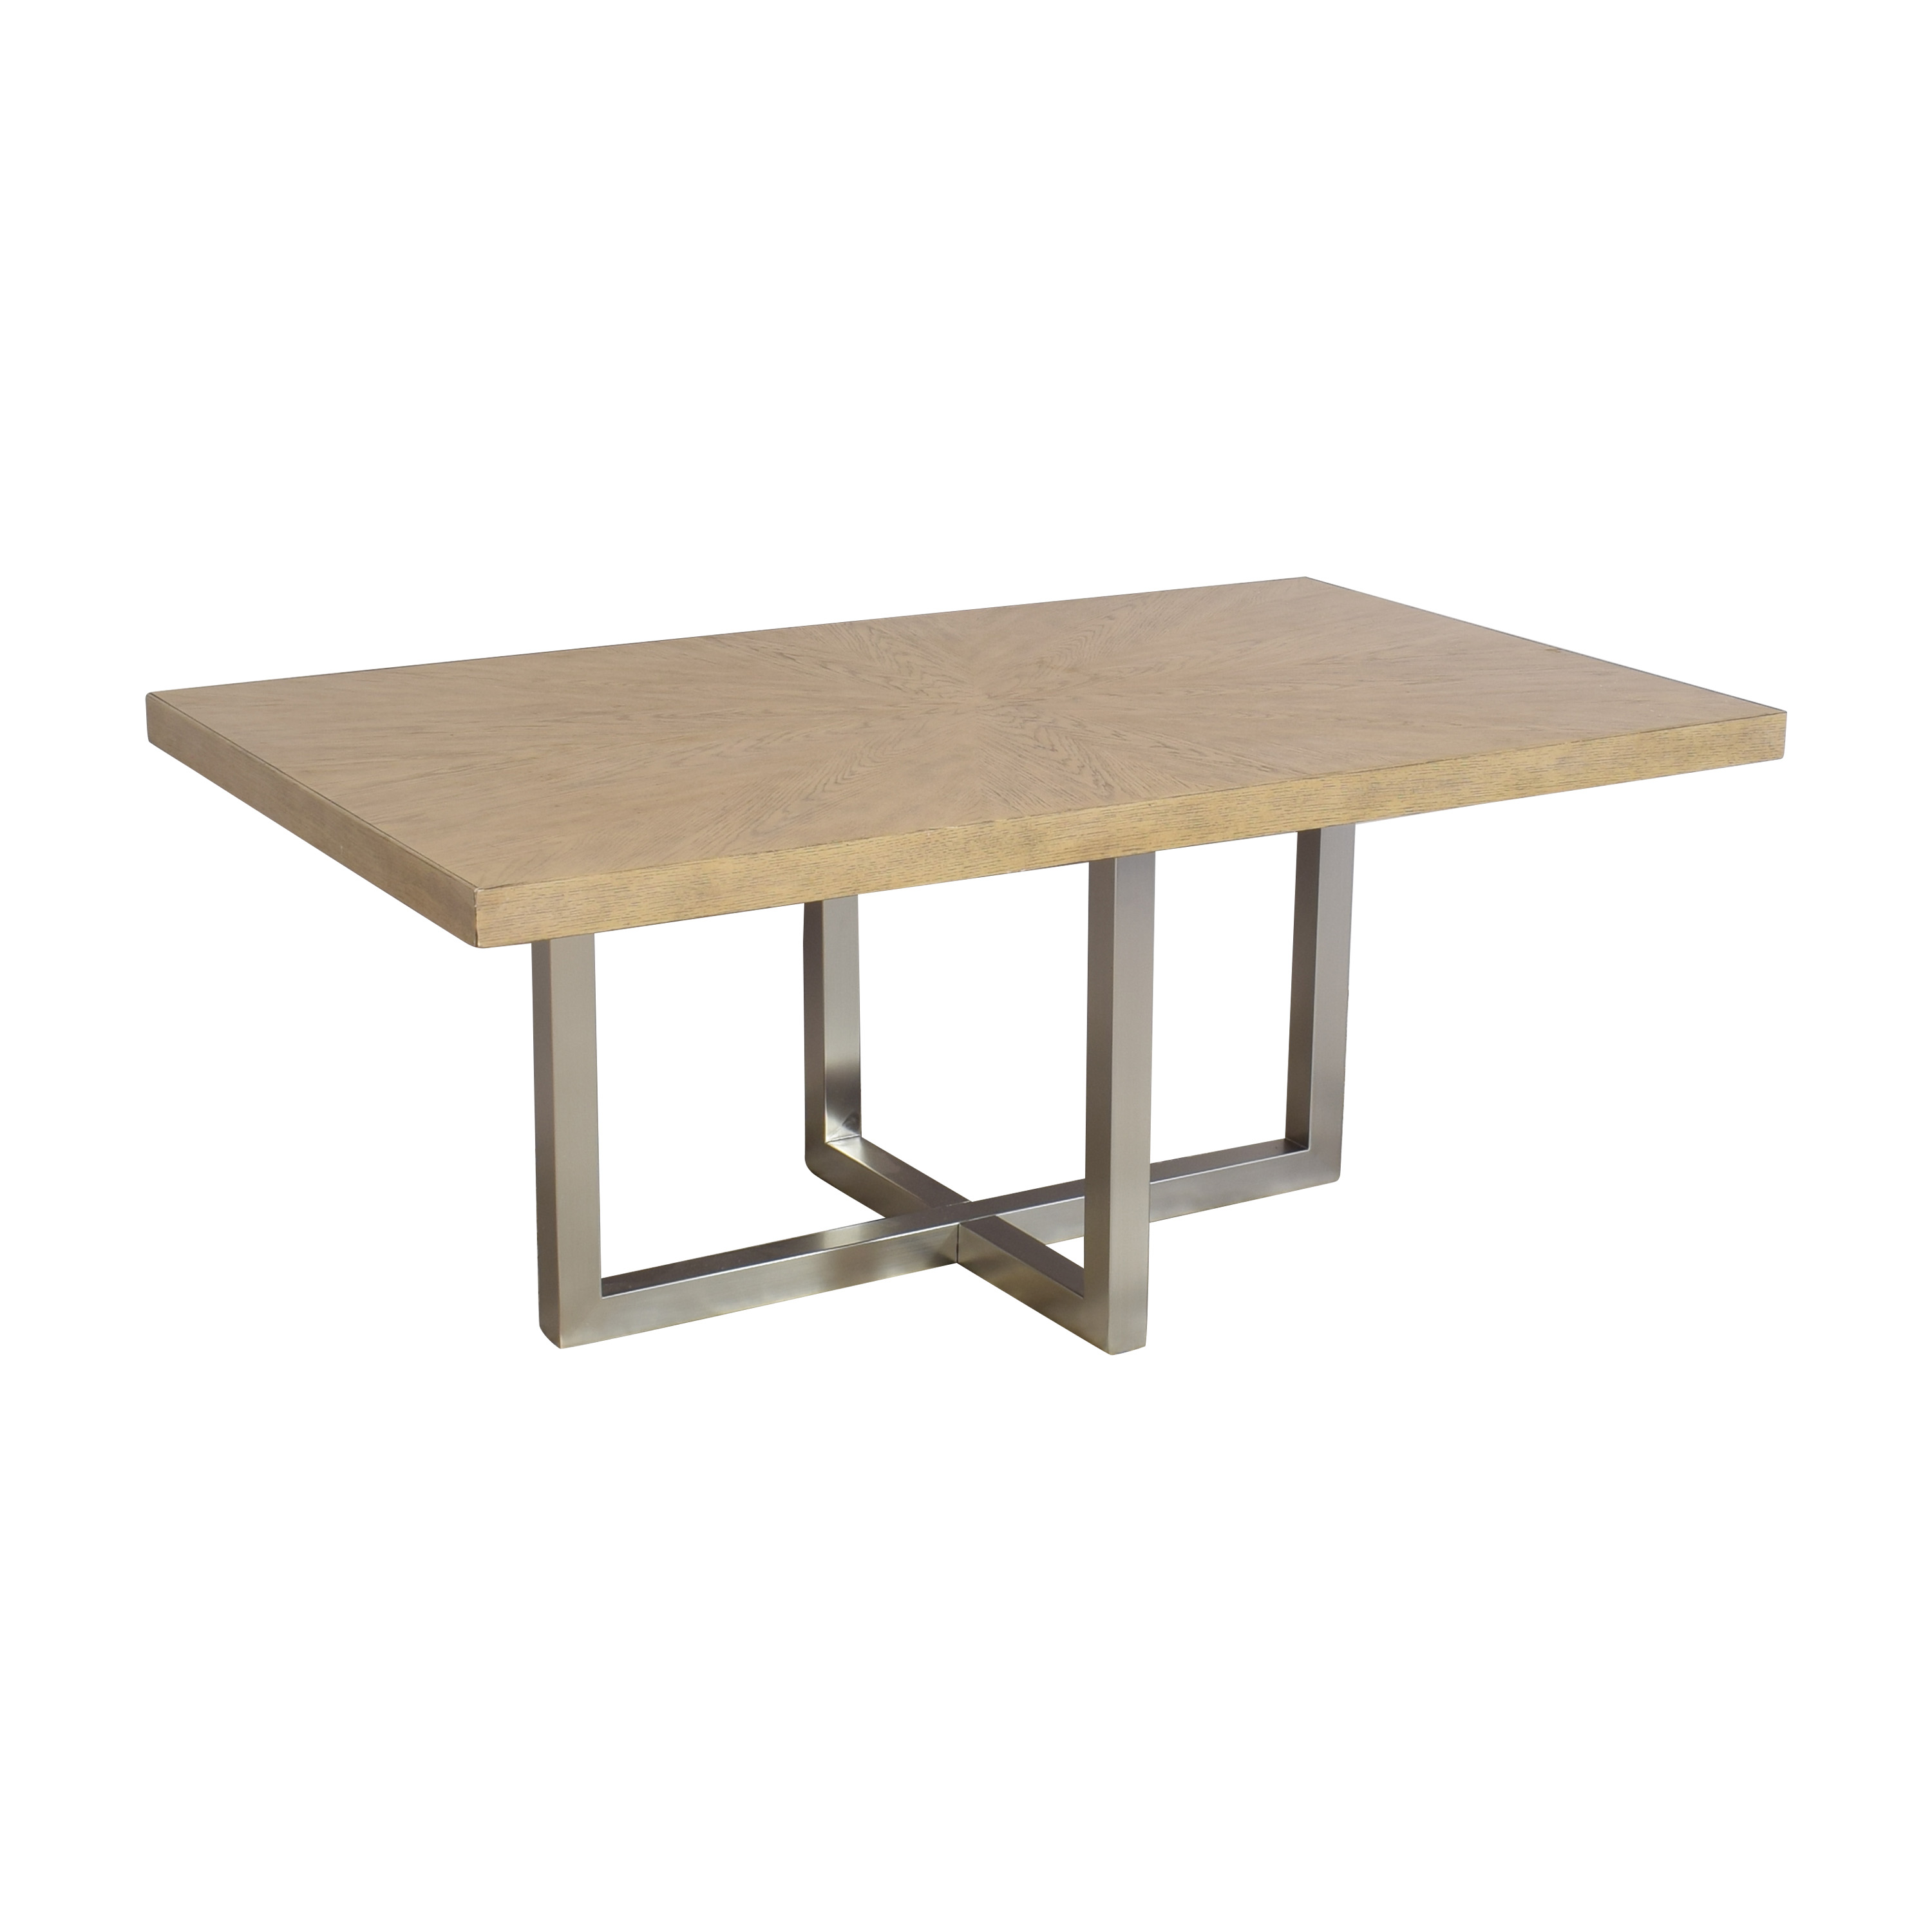 Macy's Macy's Altair Contemporary Dining Table dimensions